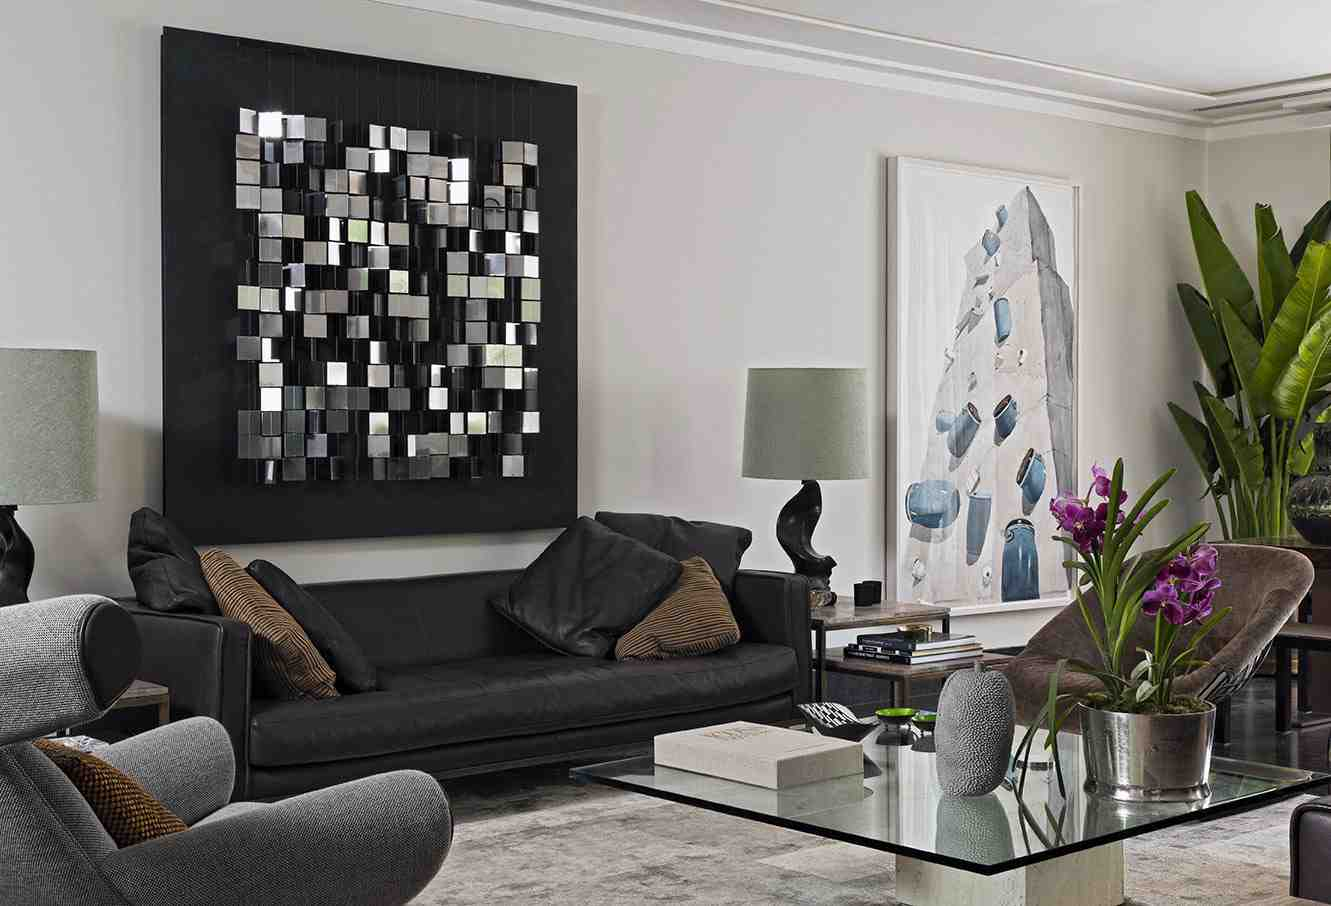 Living room wall decor 5 options decor ideasdecor ideas for Art decoration ideas for room